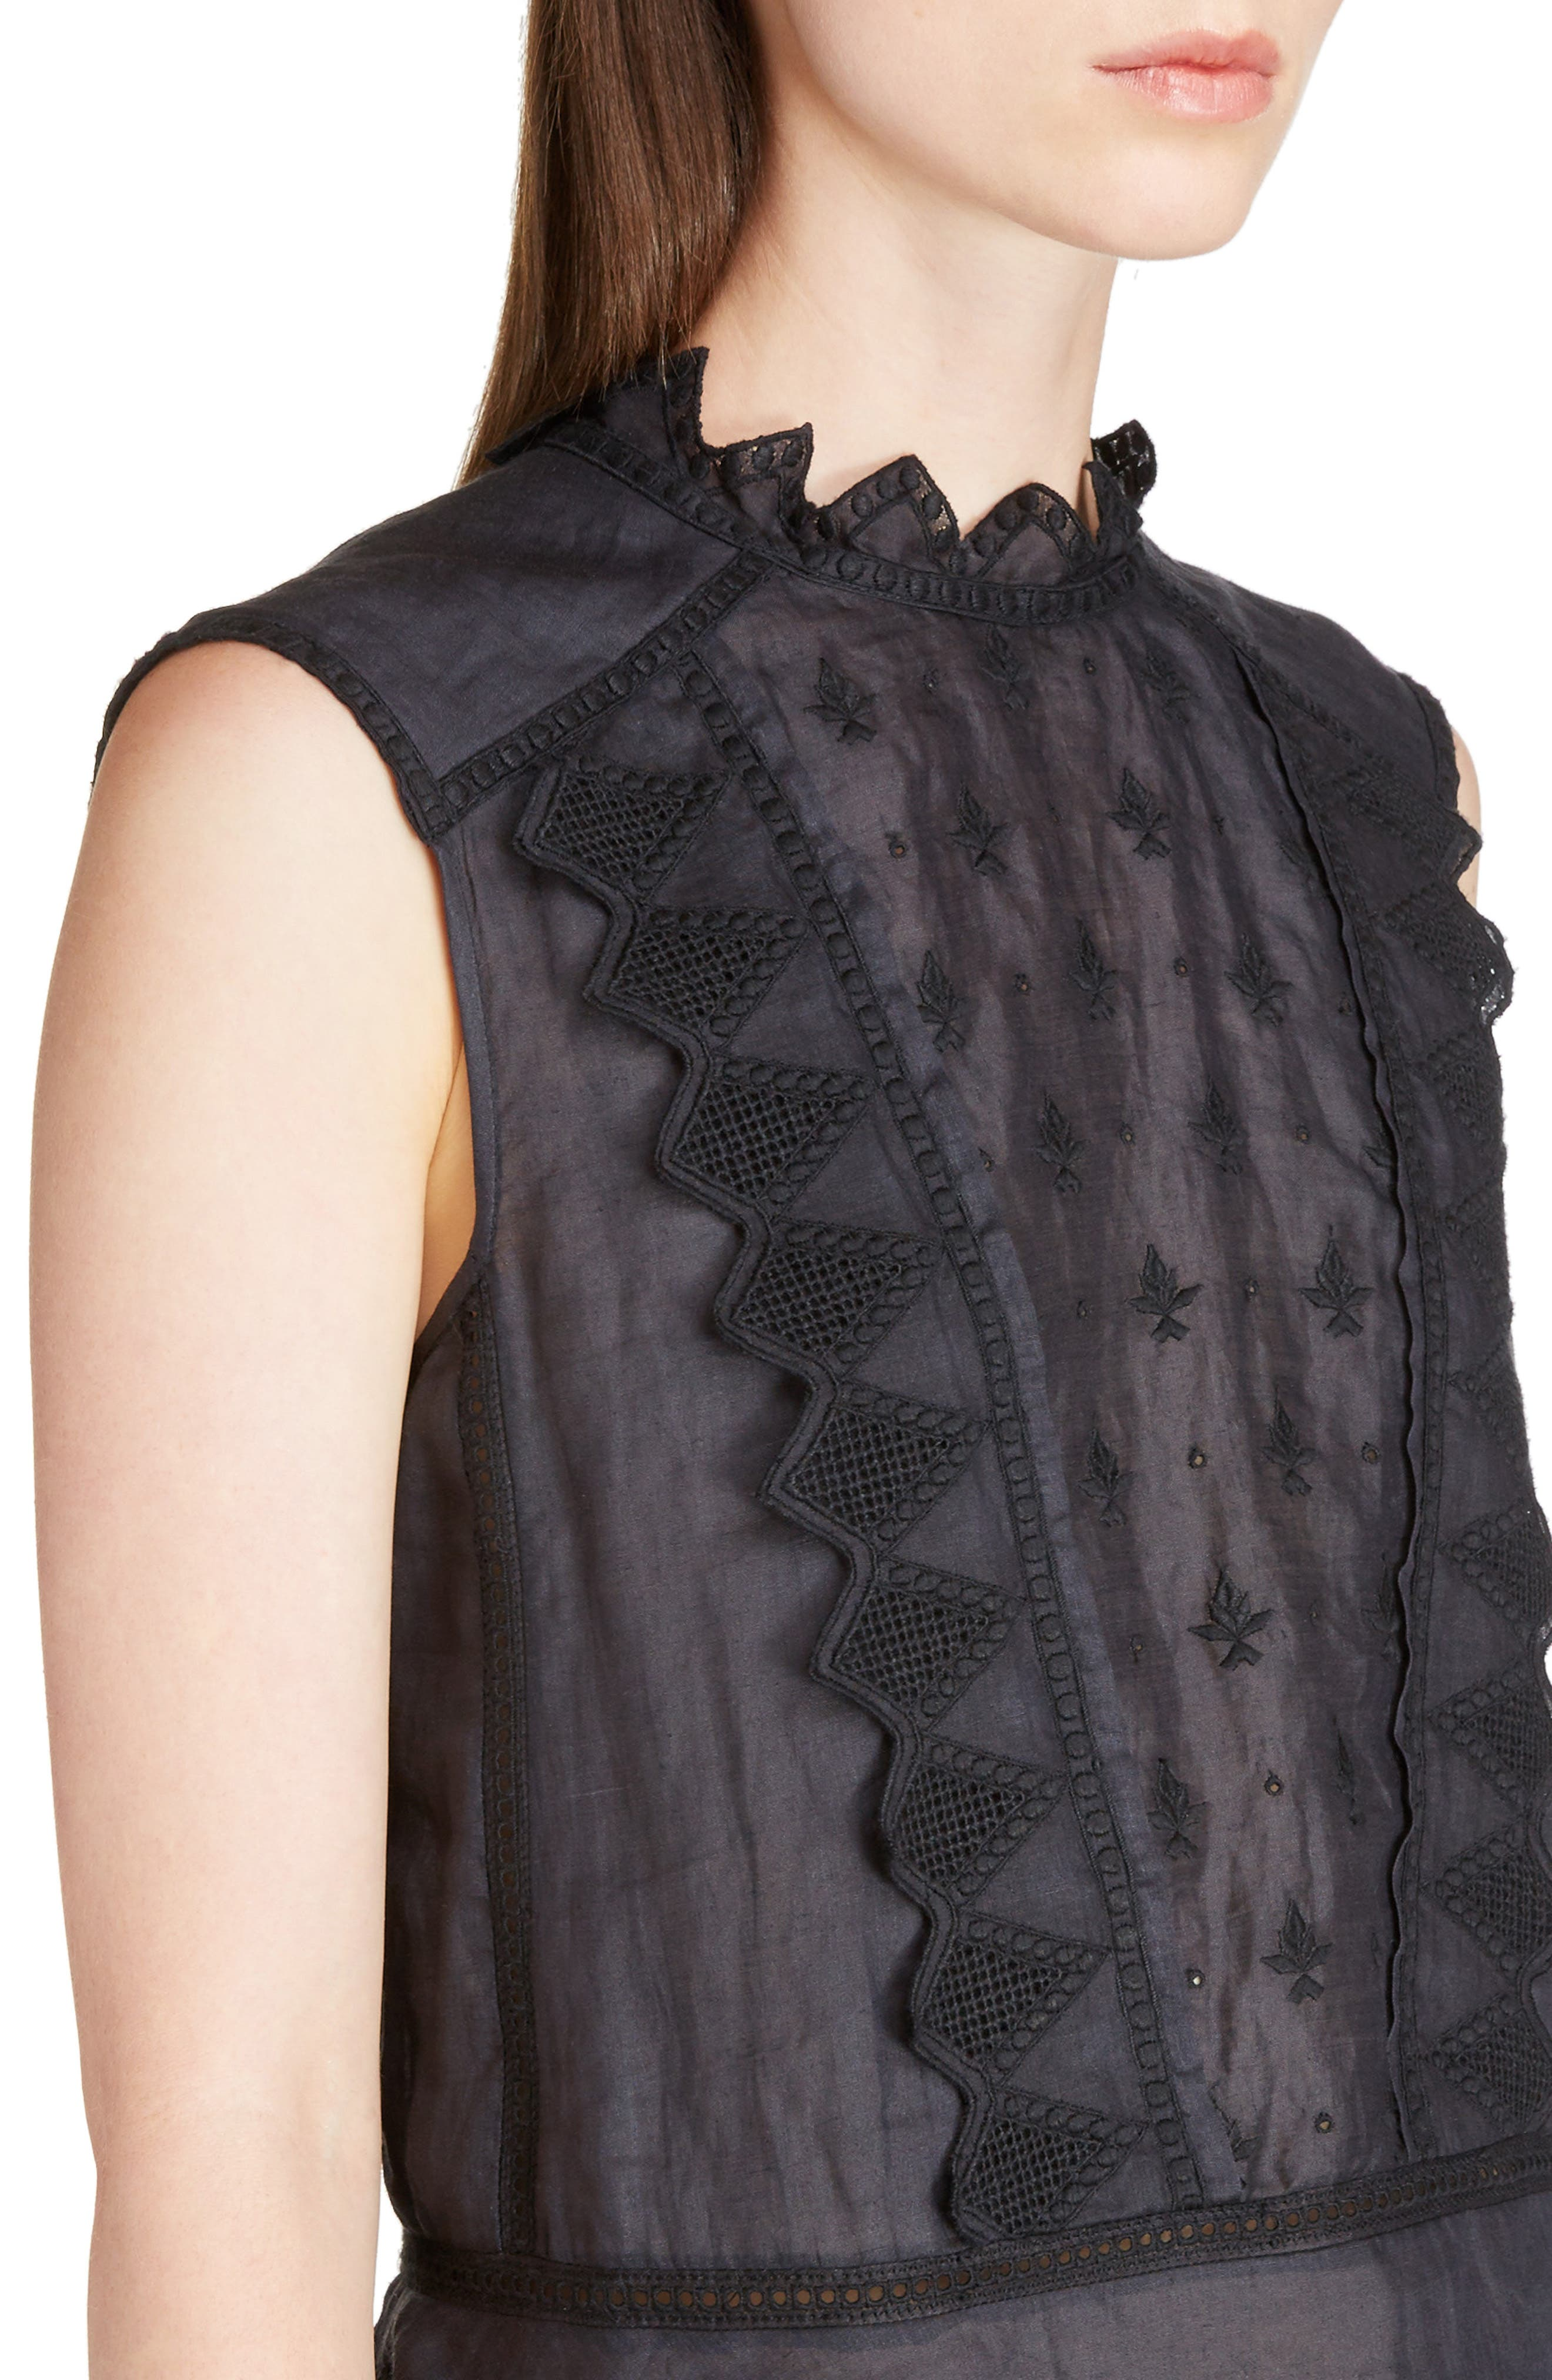 Nust Embroidered Top,                             Alternate thumbnail 4, color,                             Black